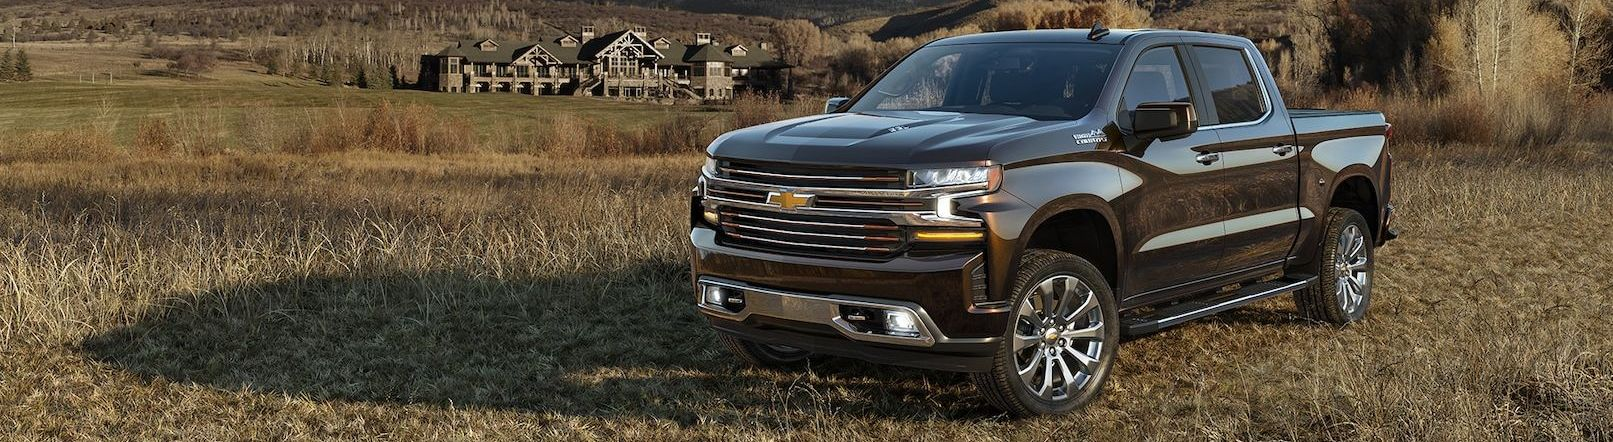 Chevrolet J D  Power Dependability Awards